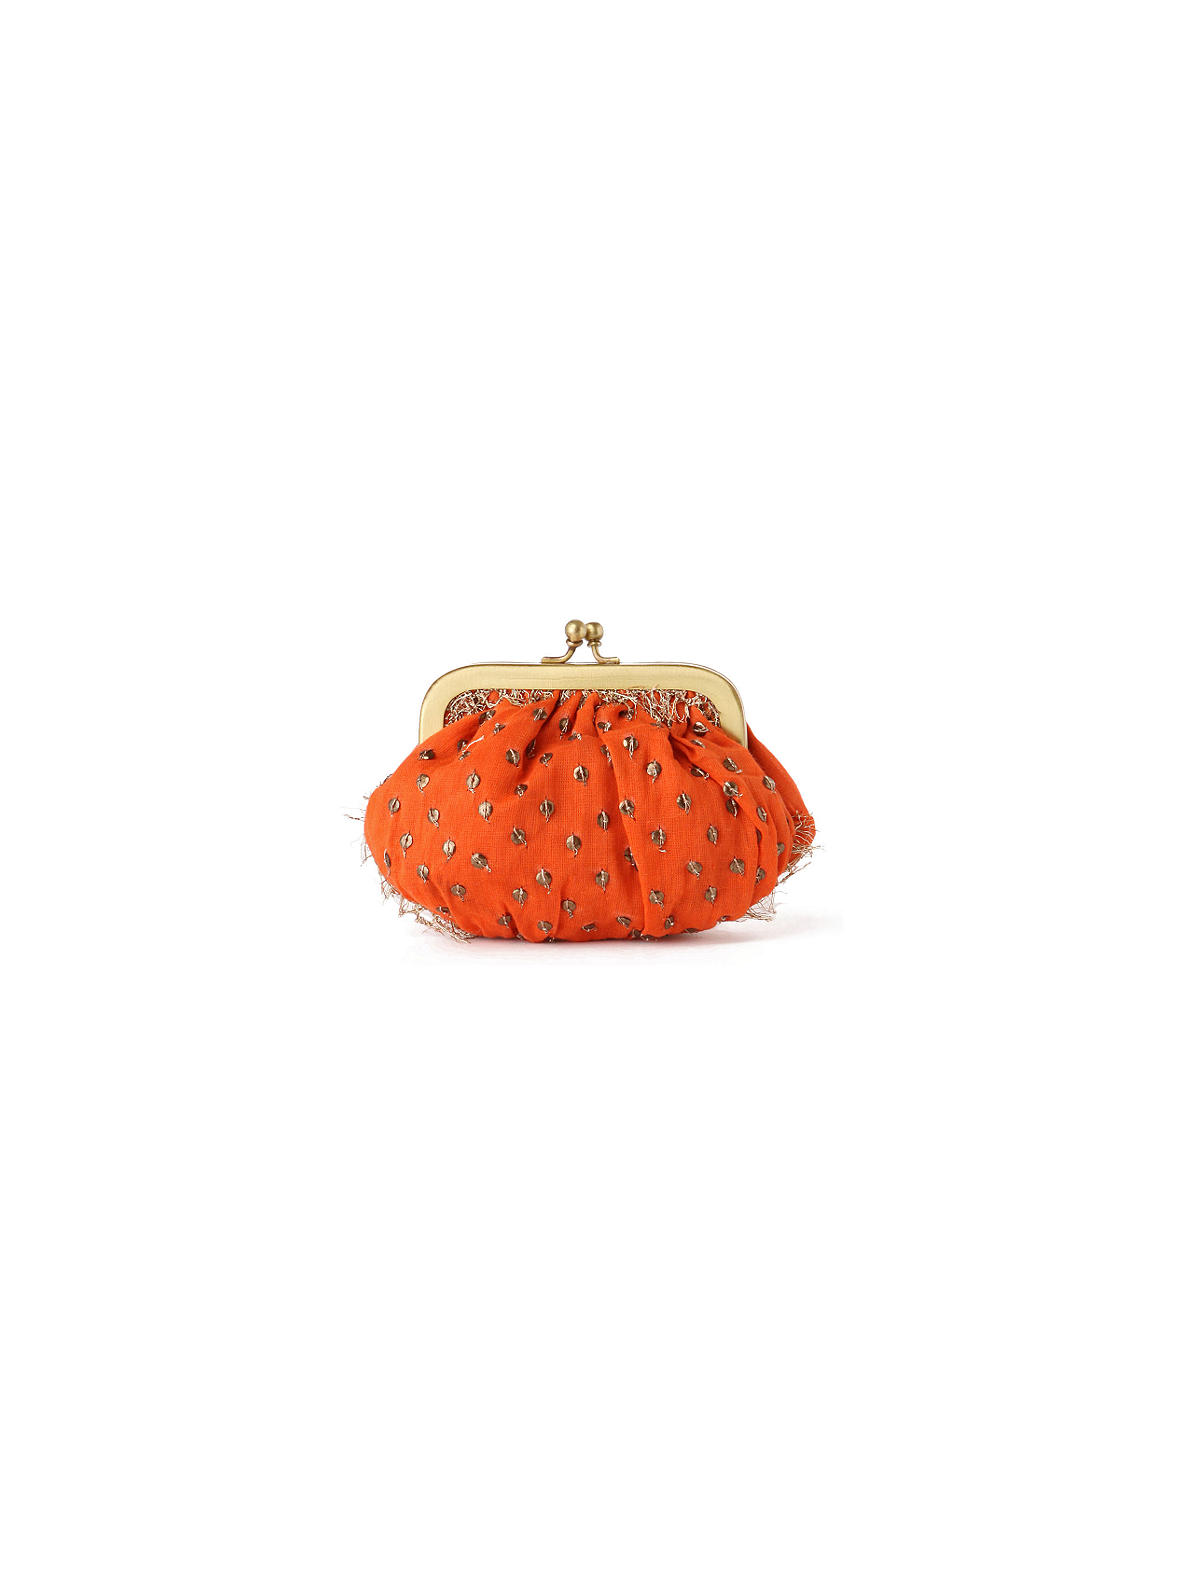 Glitzy Coin Carrier - Anthropologie.com